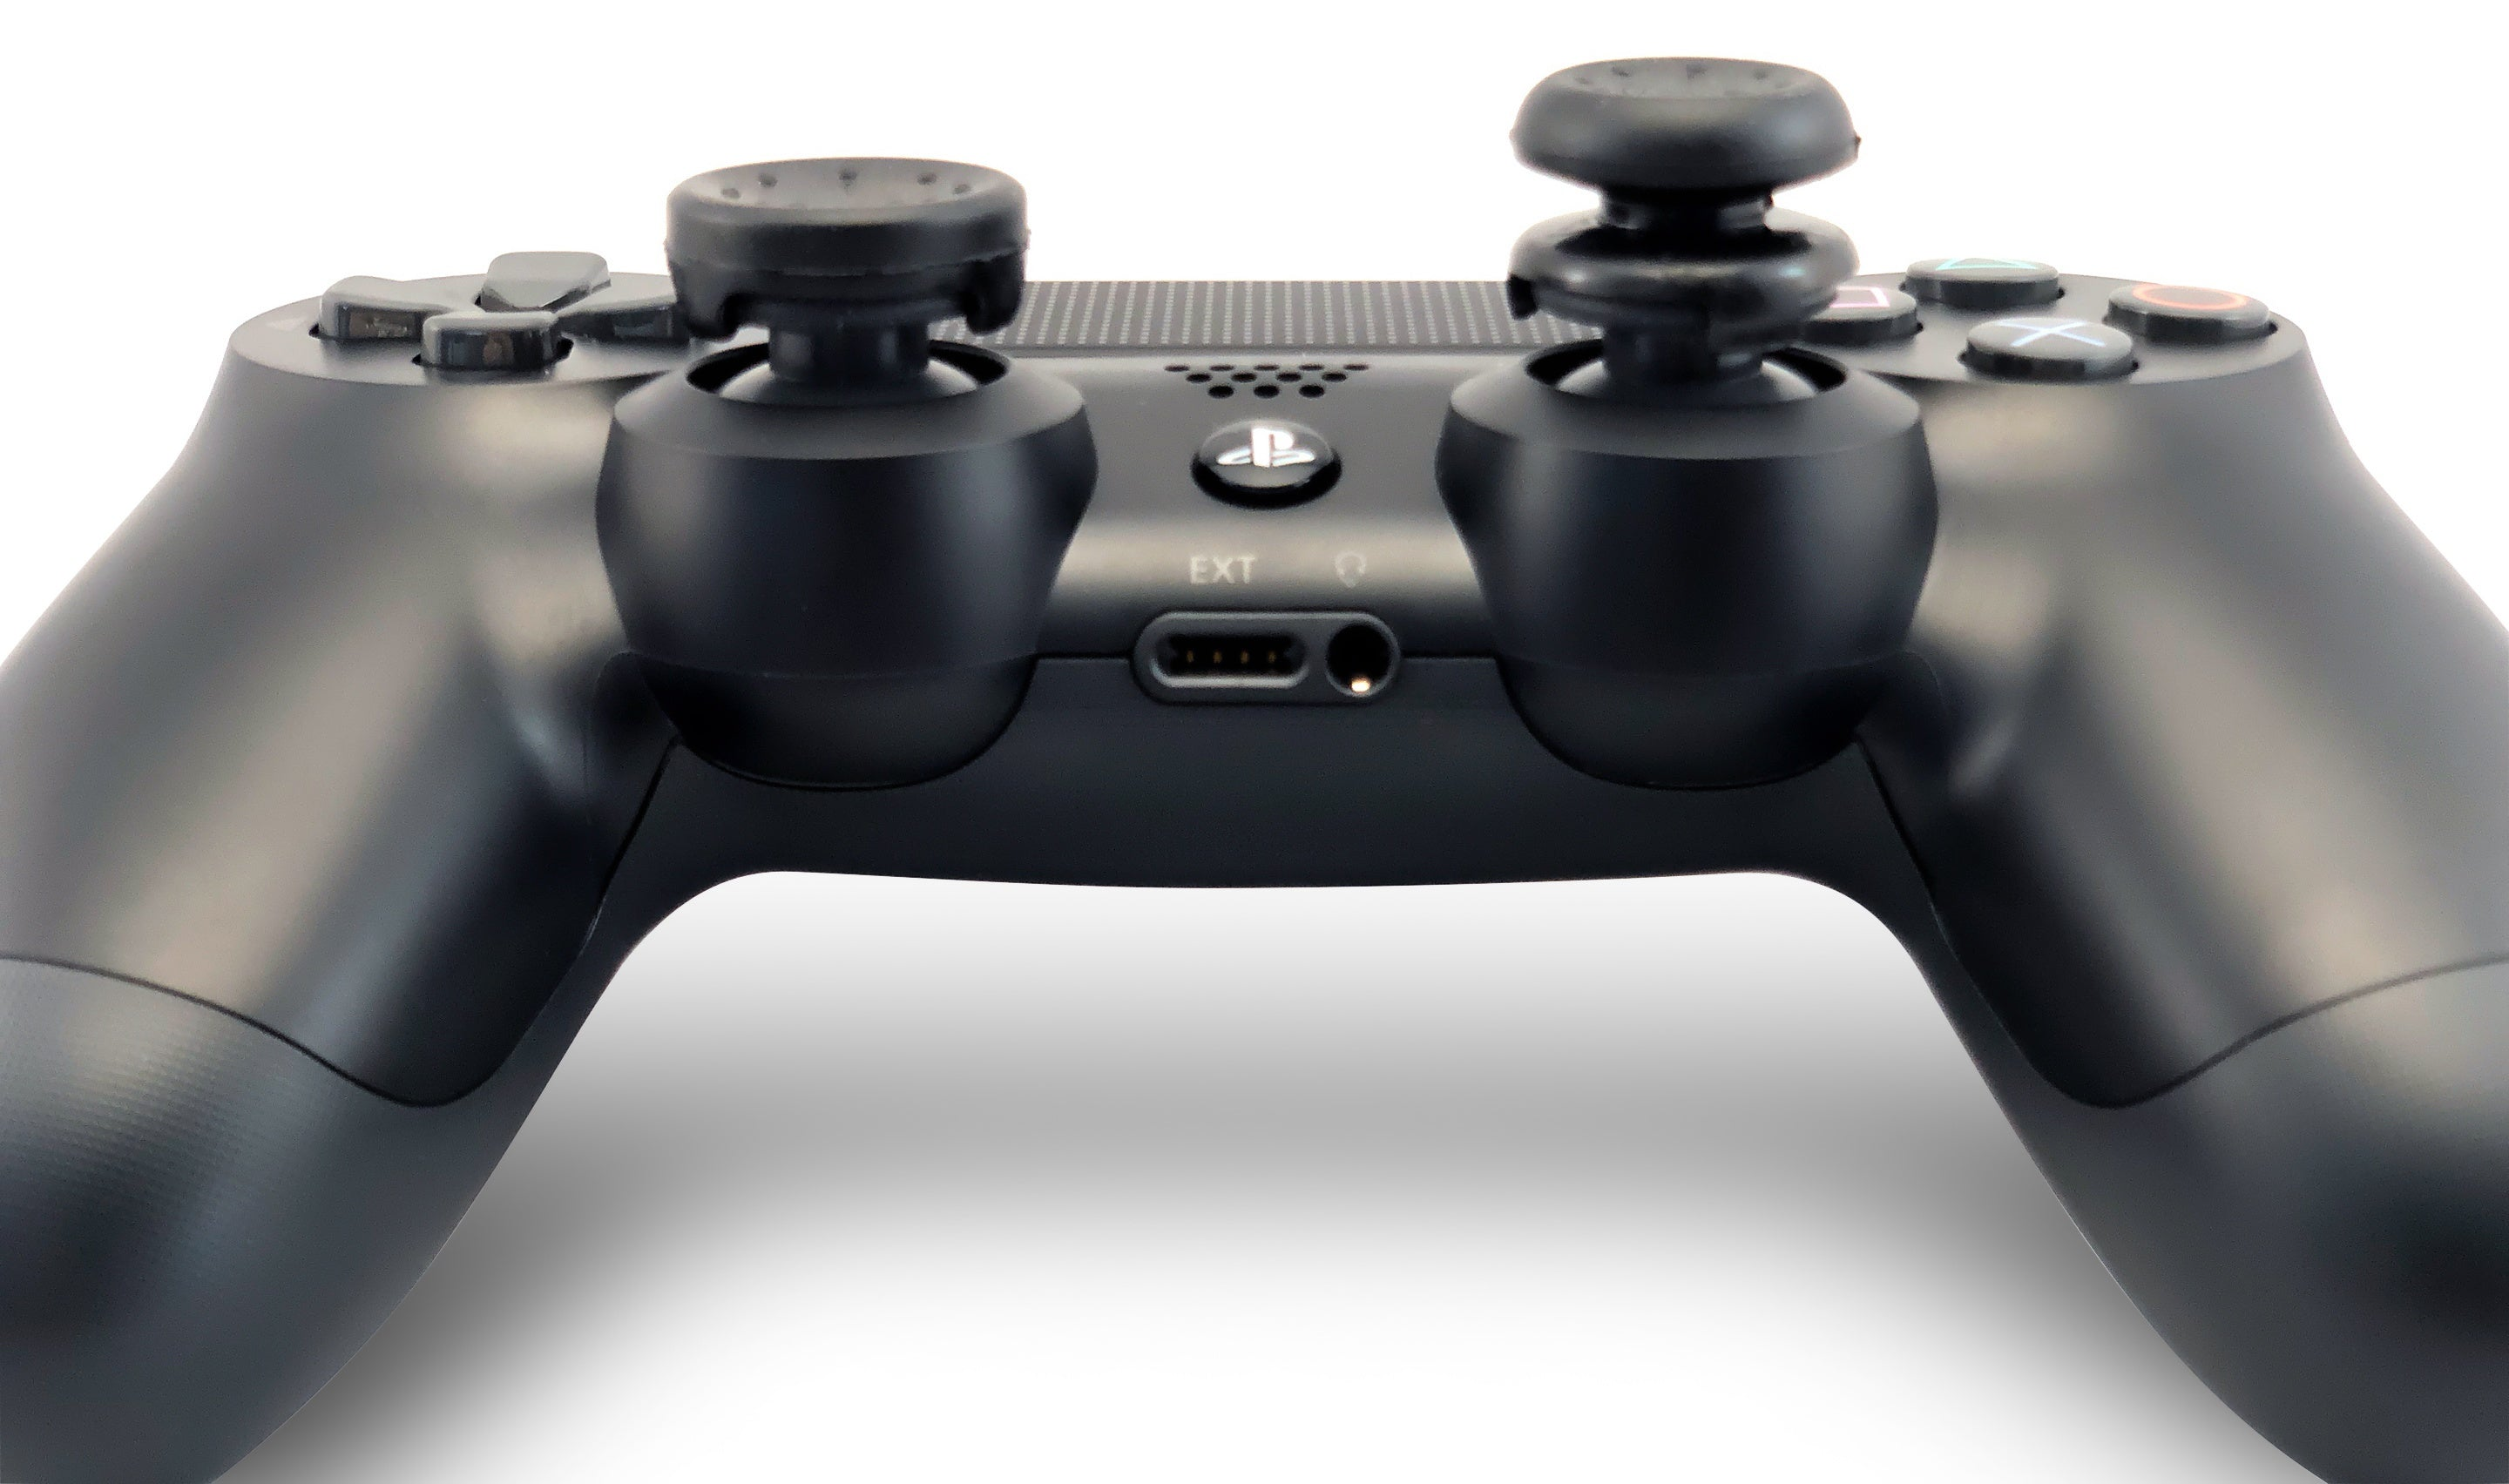 Weapons of Mass Destruction - PS4 Performance Triggers and Precision Thumbsticks - 1 Tall Stem & 1 Short Stem Stick - Black